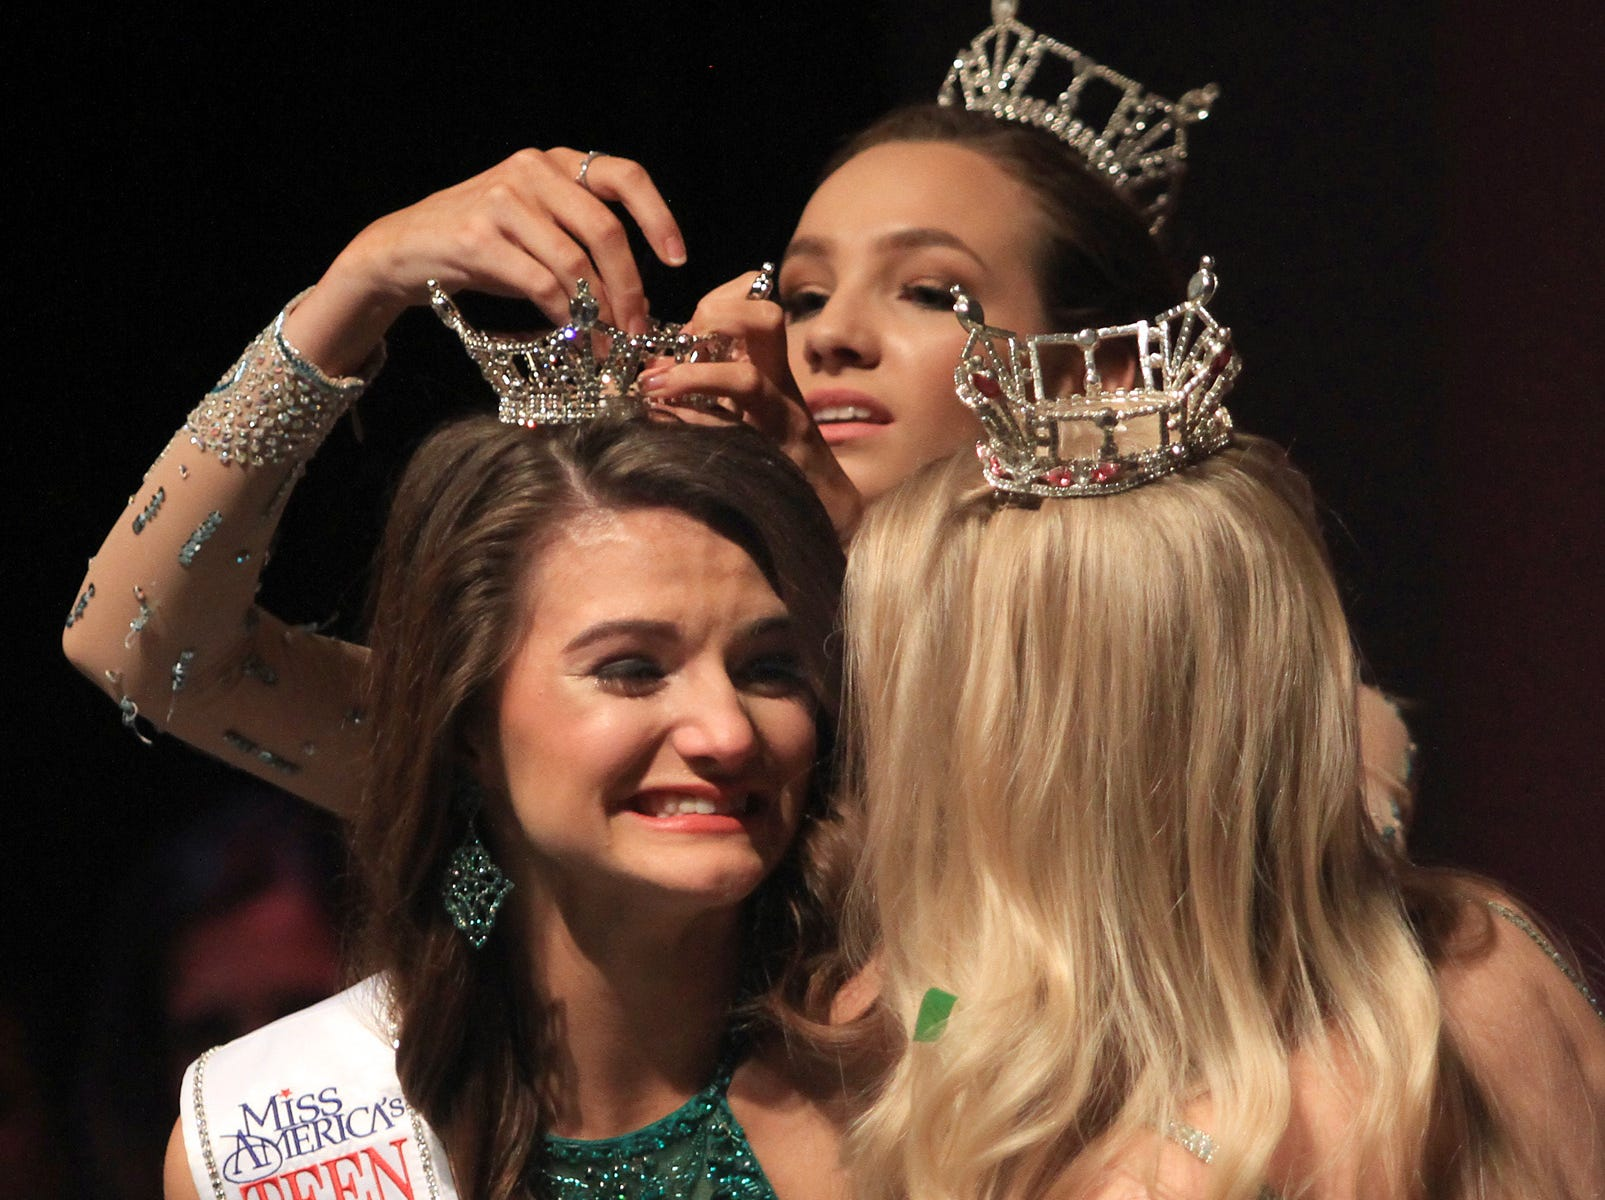 Taylor Parsons gets her crown after winning the Miss Tennessee;s Outstanding Teen in Gallatin, TN on Saturday, March 30, 2019.